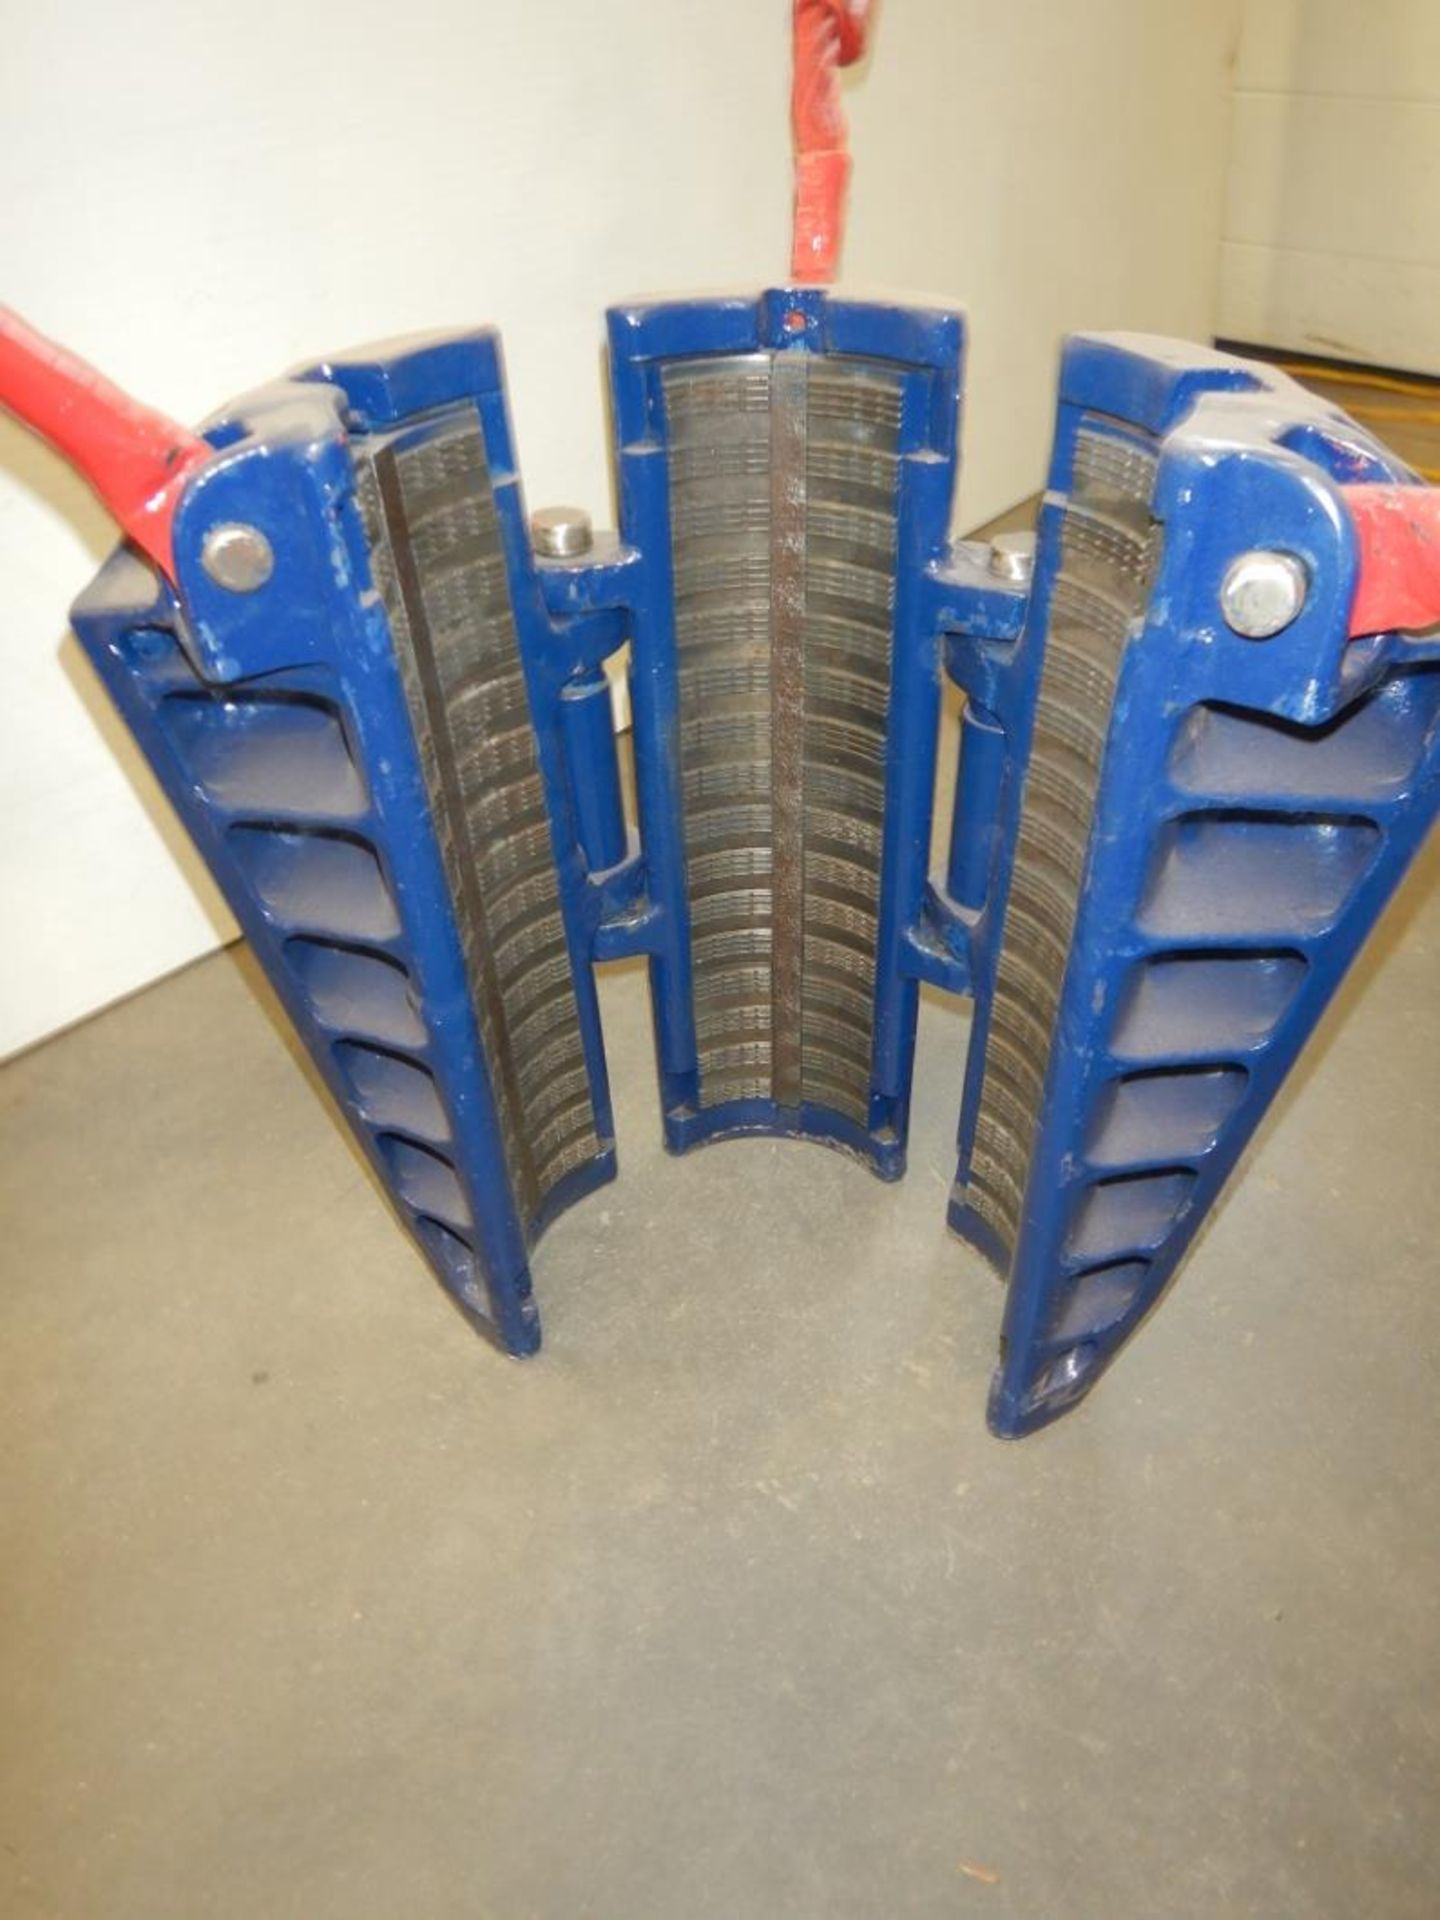 5.5IN TALL ROTARY SLIPS - Image 4 of 6